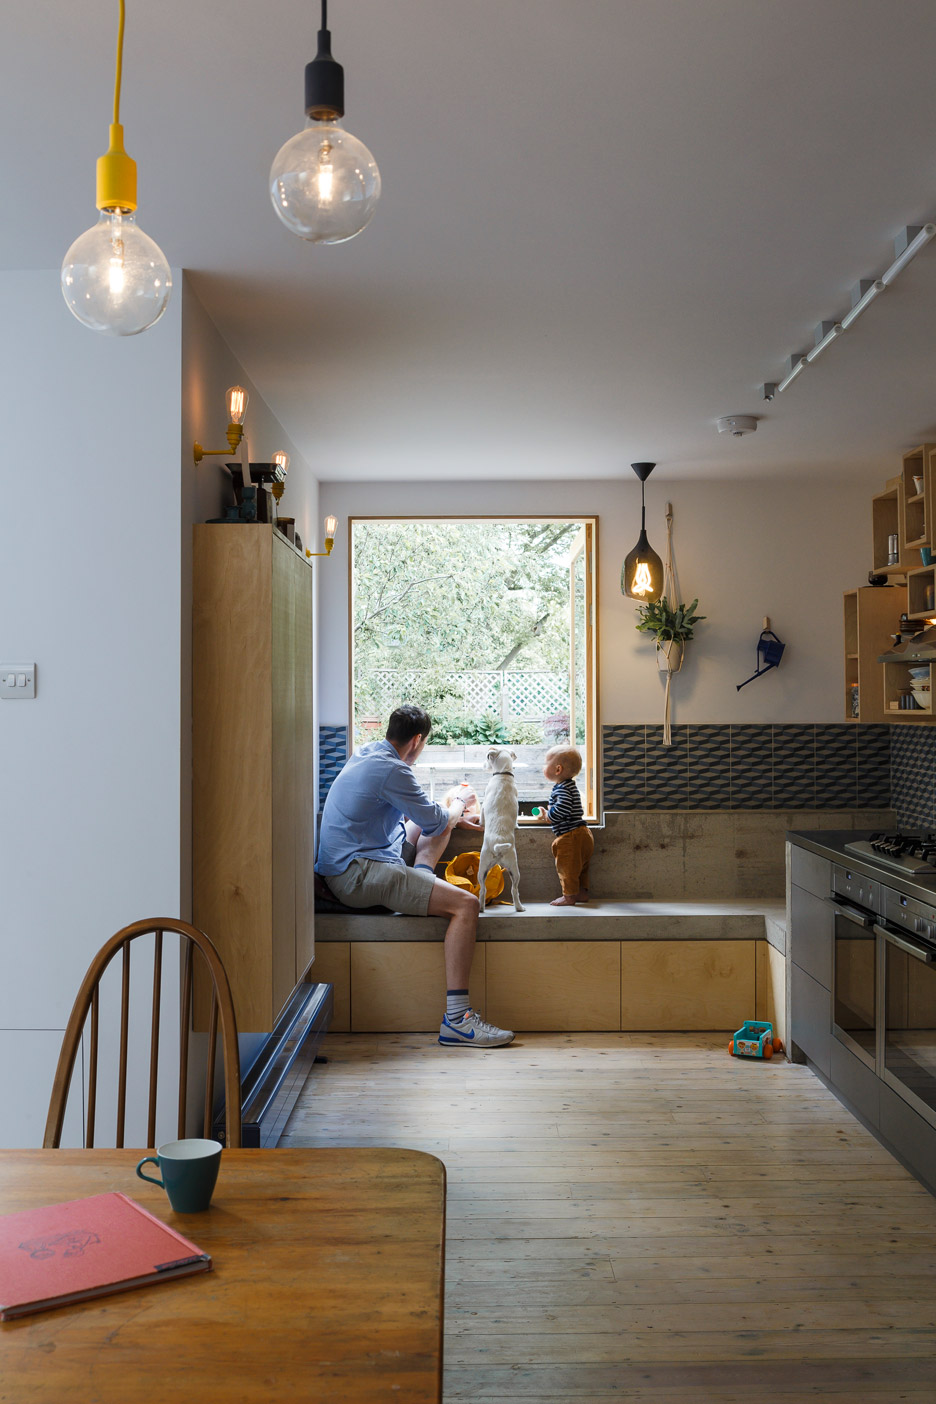 Nook House by Mustard Architects. Photograph by Tim Crocker